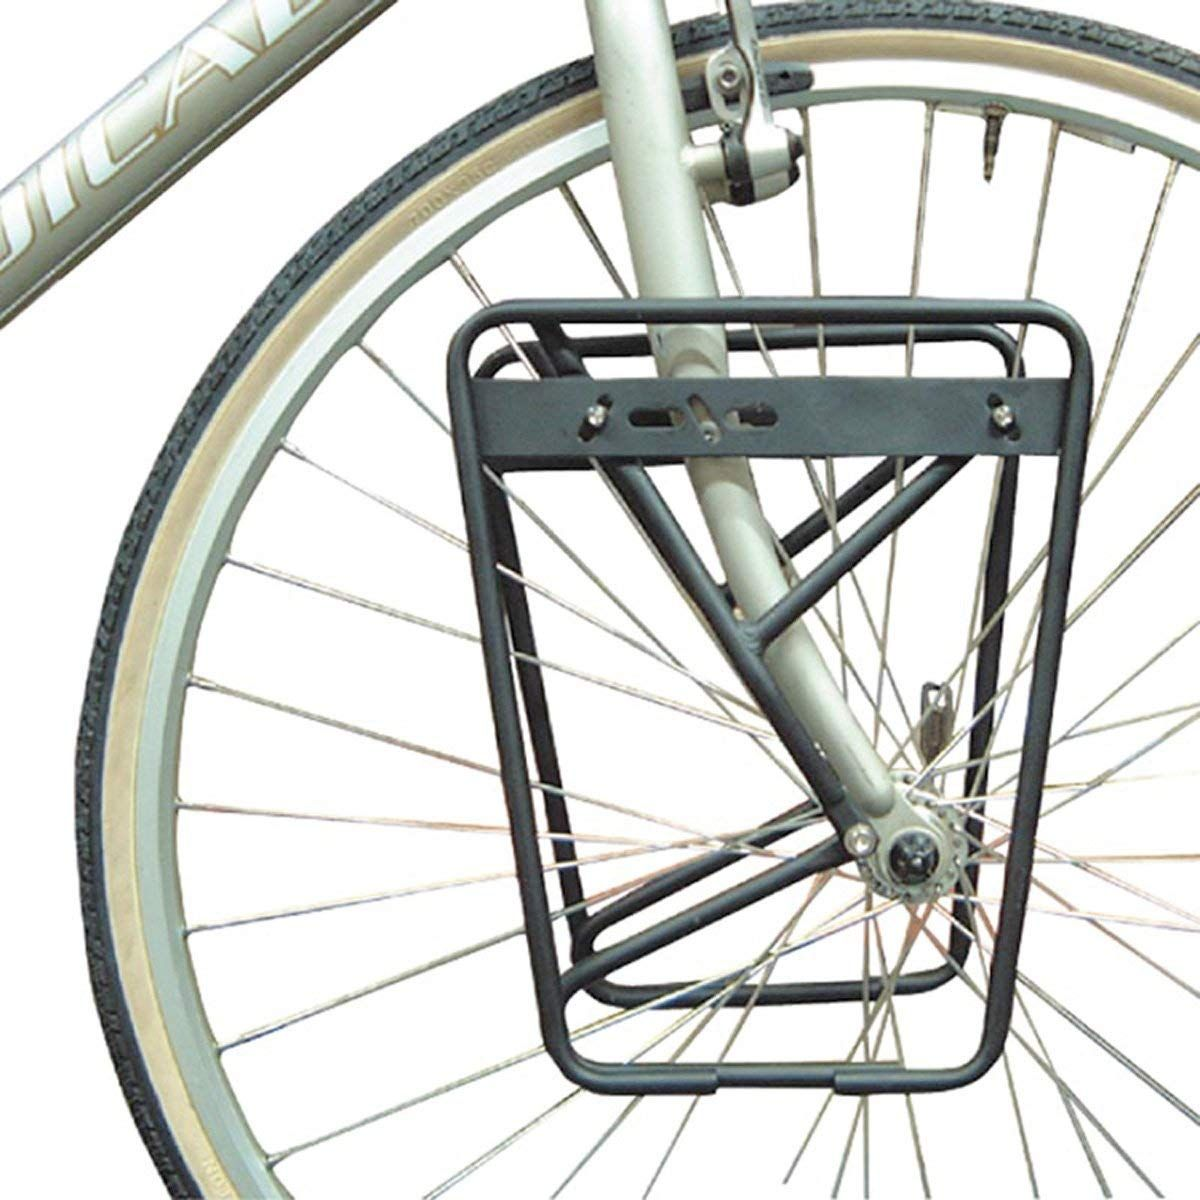 Evo Low Rider Fork Mounted Front Bicycle Rack See The Photo